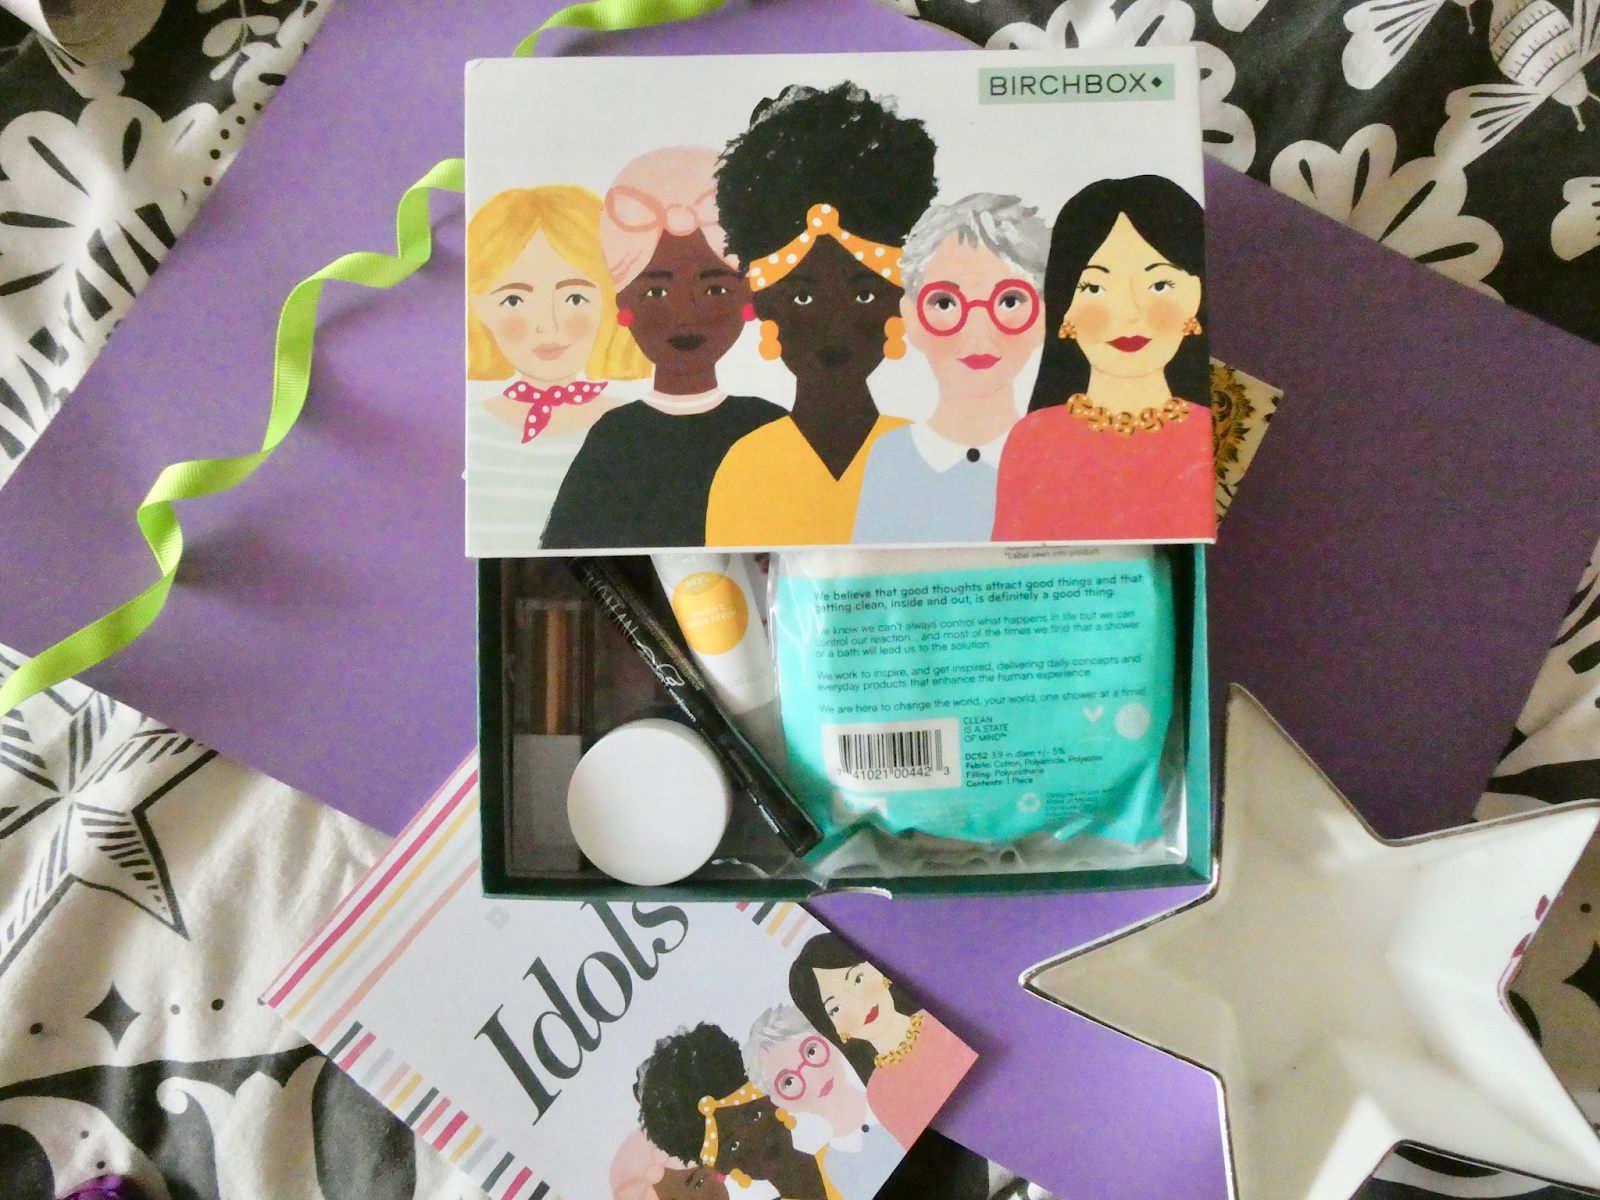 Birchbox March 2020 'Idols' Unboxing & Review